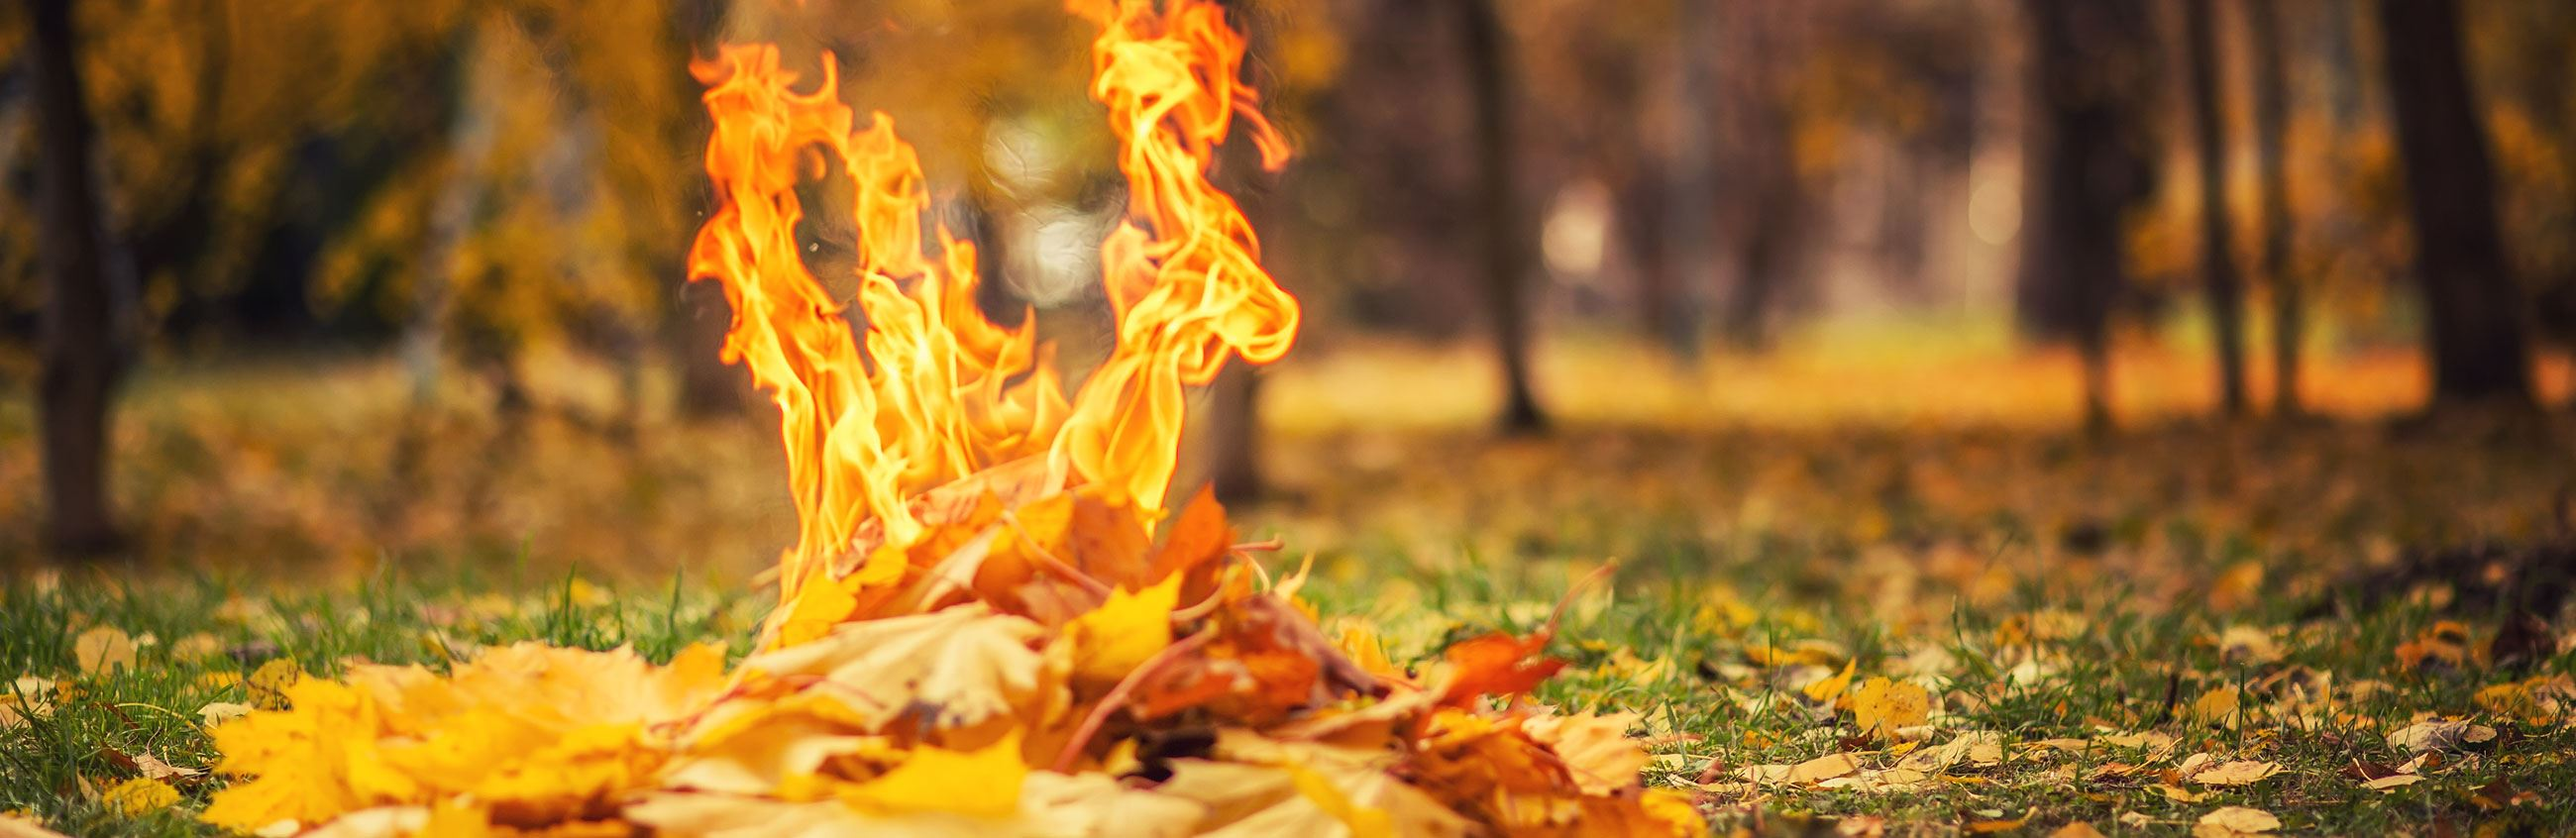 Burning Leaves Outside